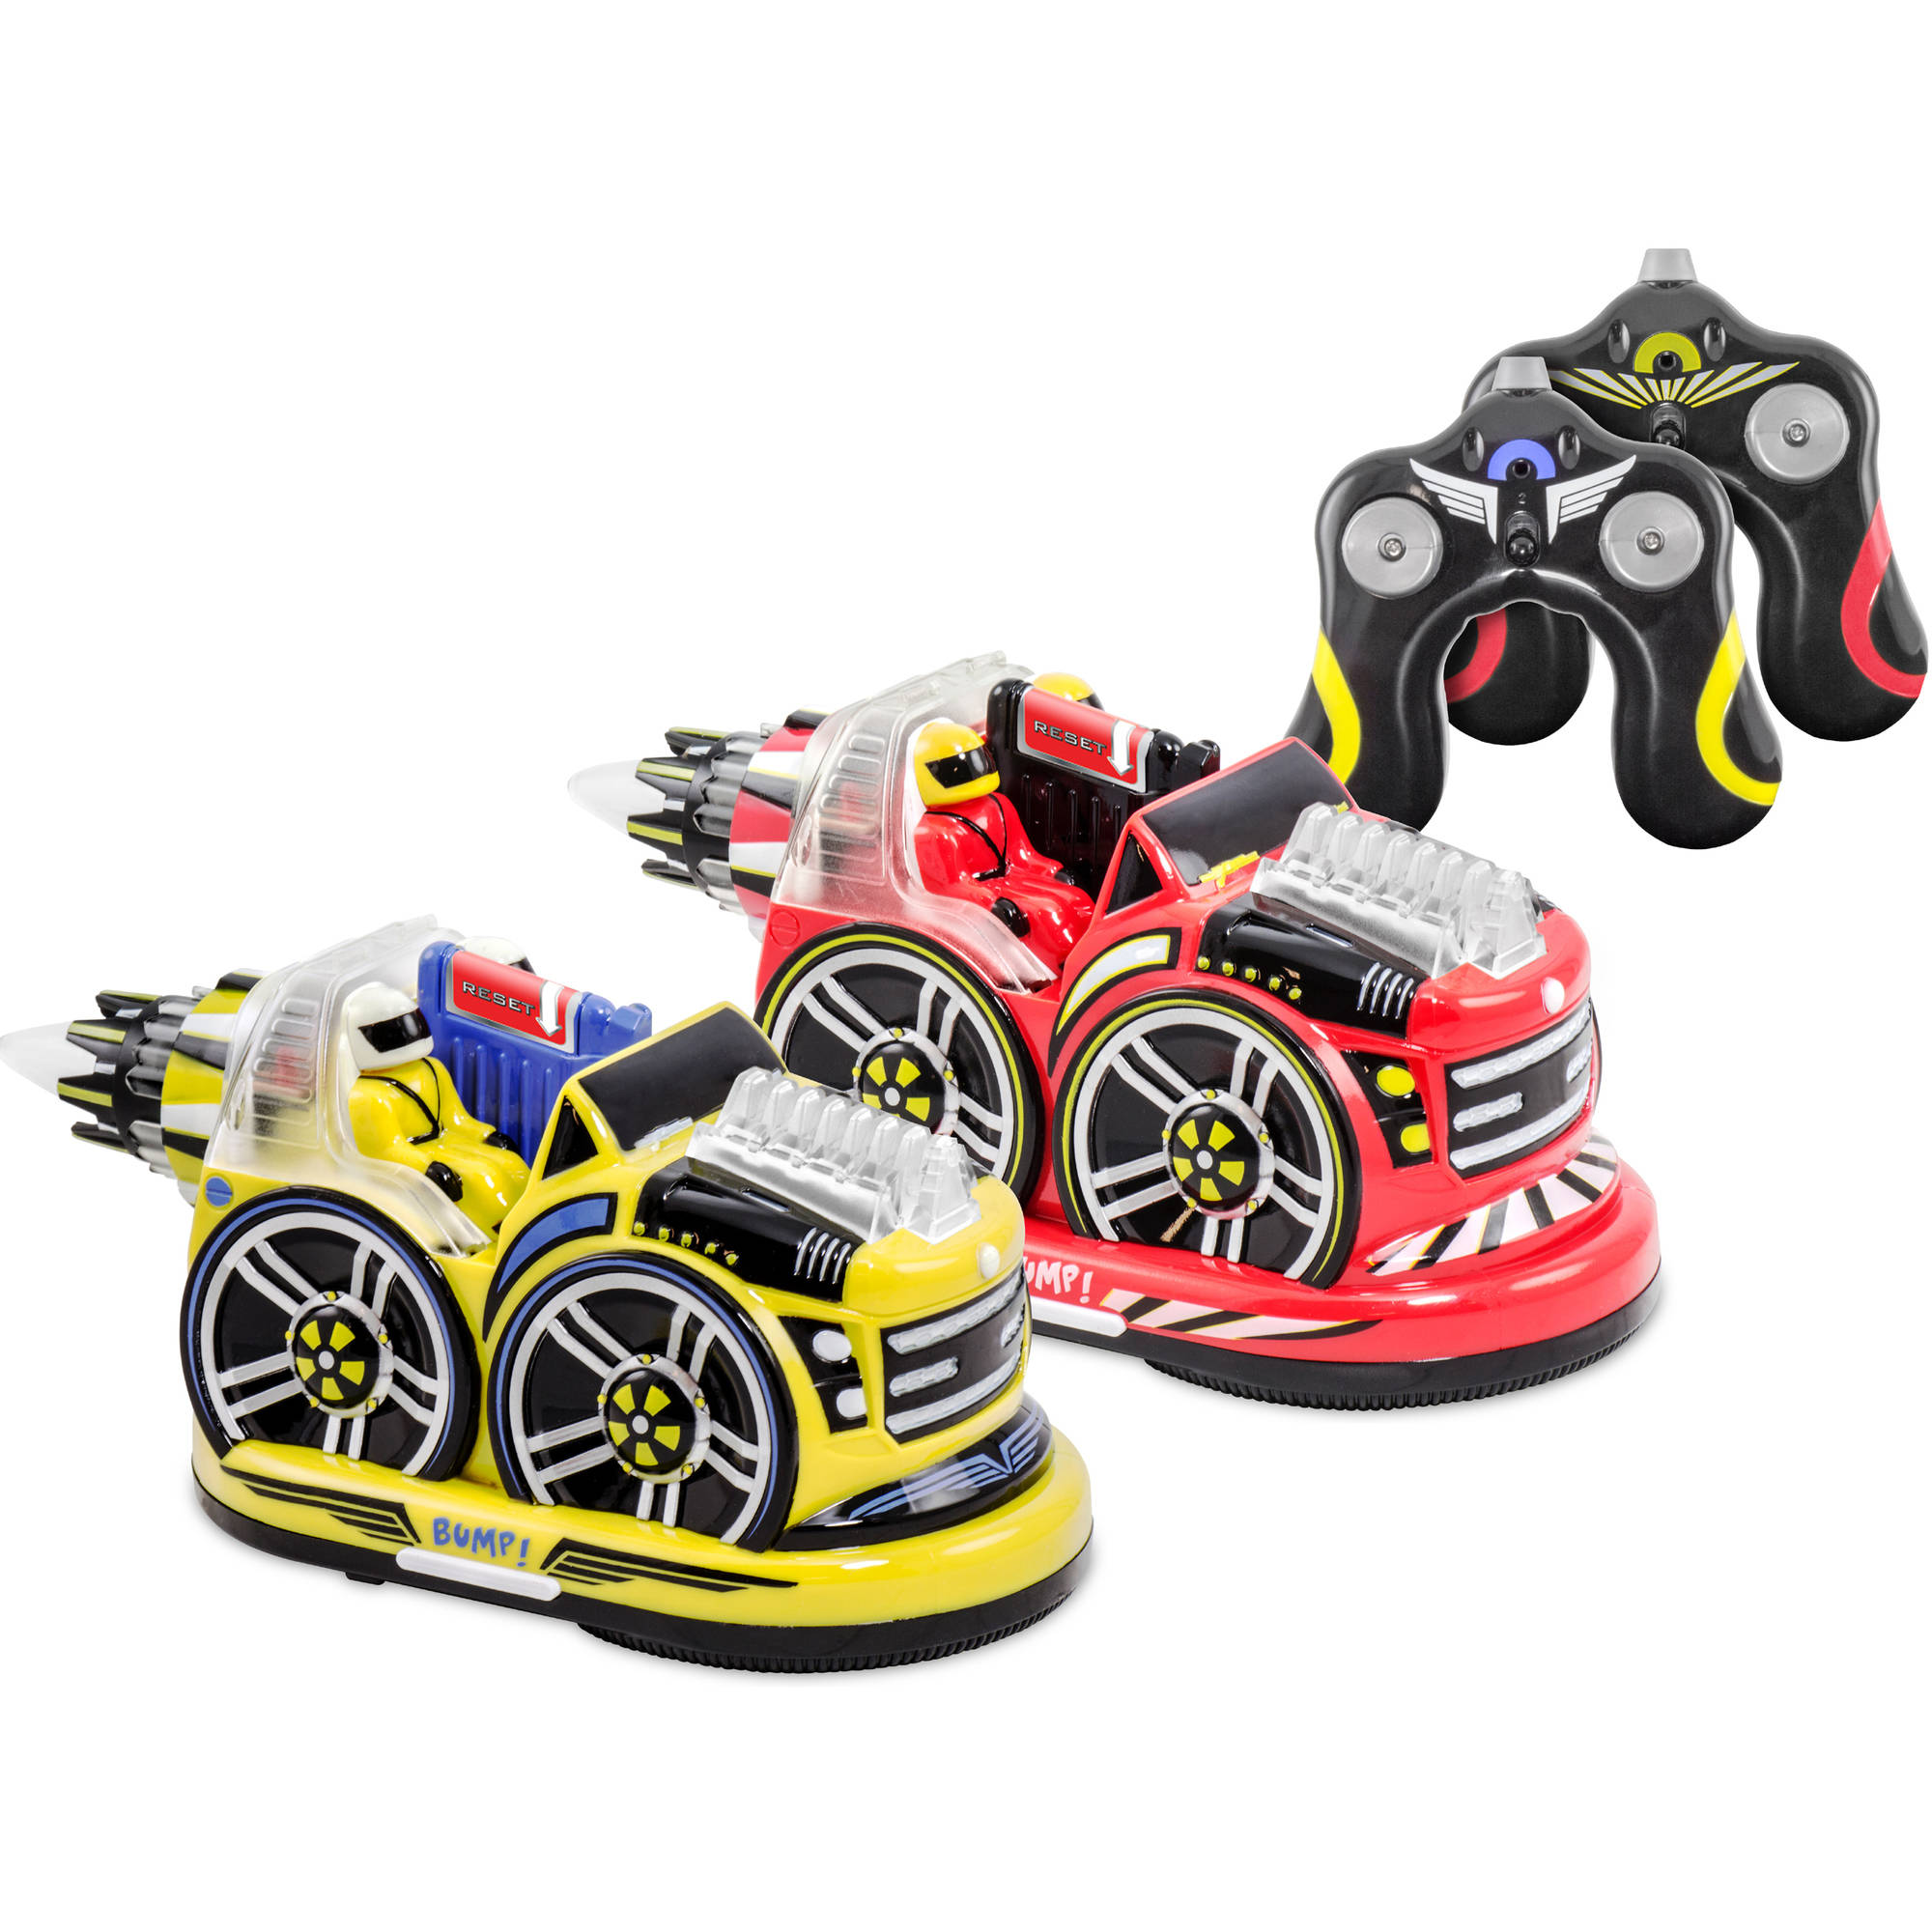 Kid Galaxy Remote Control Bumper Car Set by Kid Galaxy